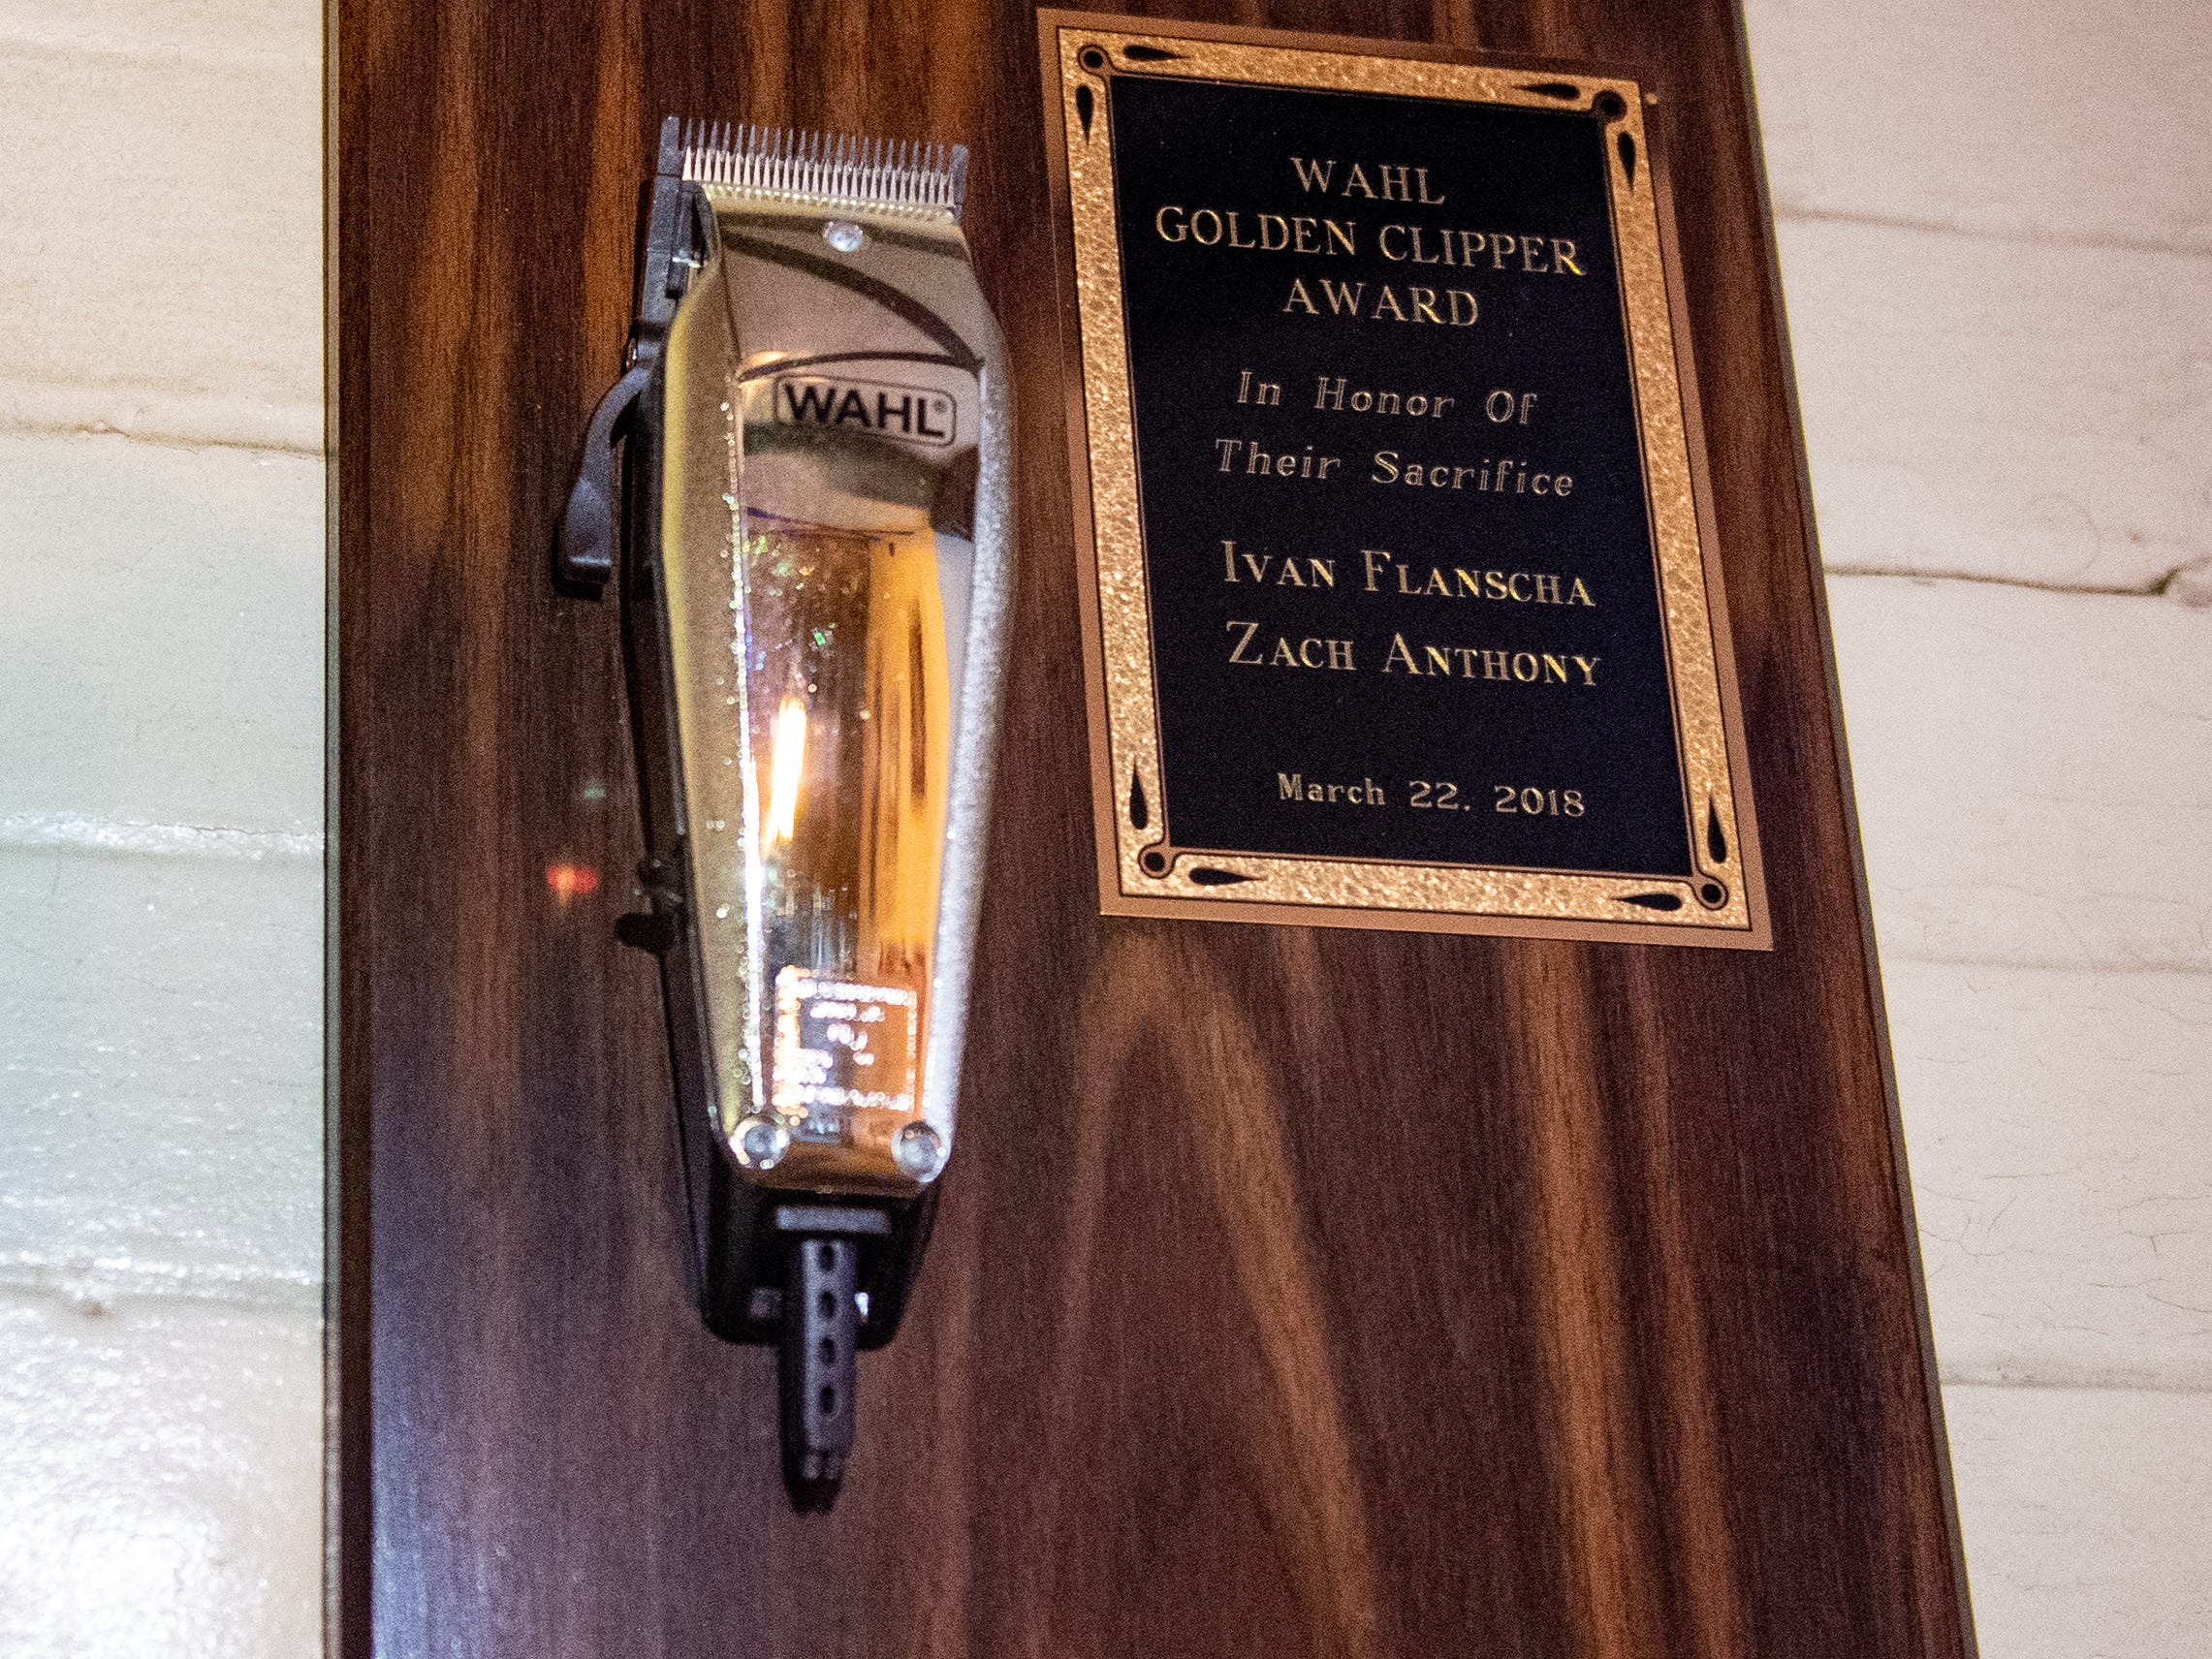 The Wahl Golden Clipper Award dedicated to Ivan Flanscha and Zachary Anthony sits in the lounge between the two oil paintings of the late York City firefighters, March 12, 2019.